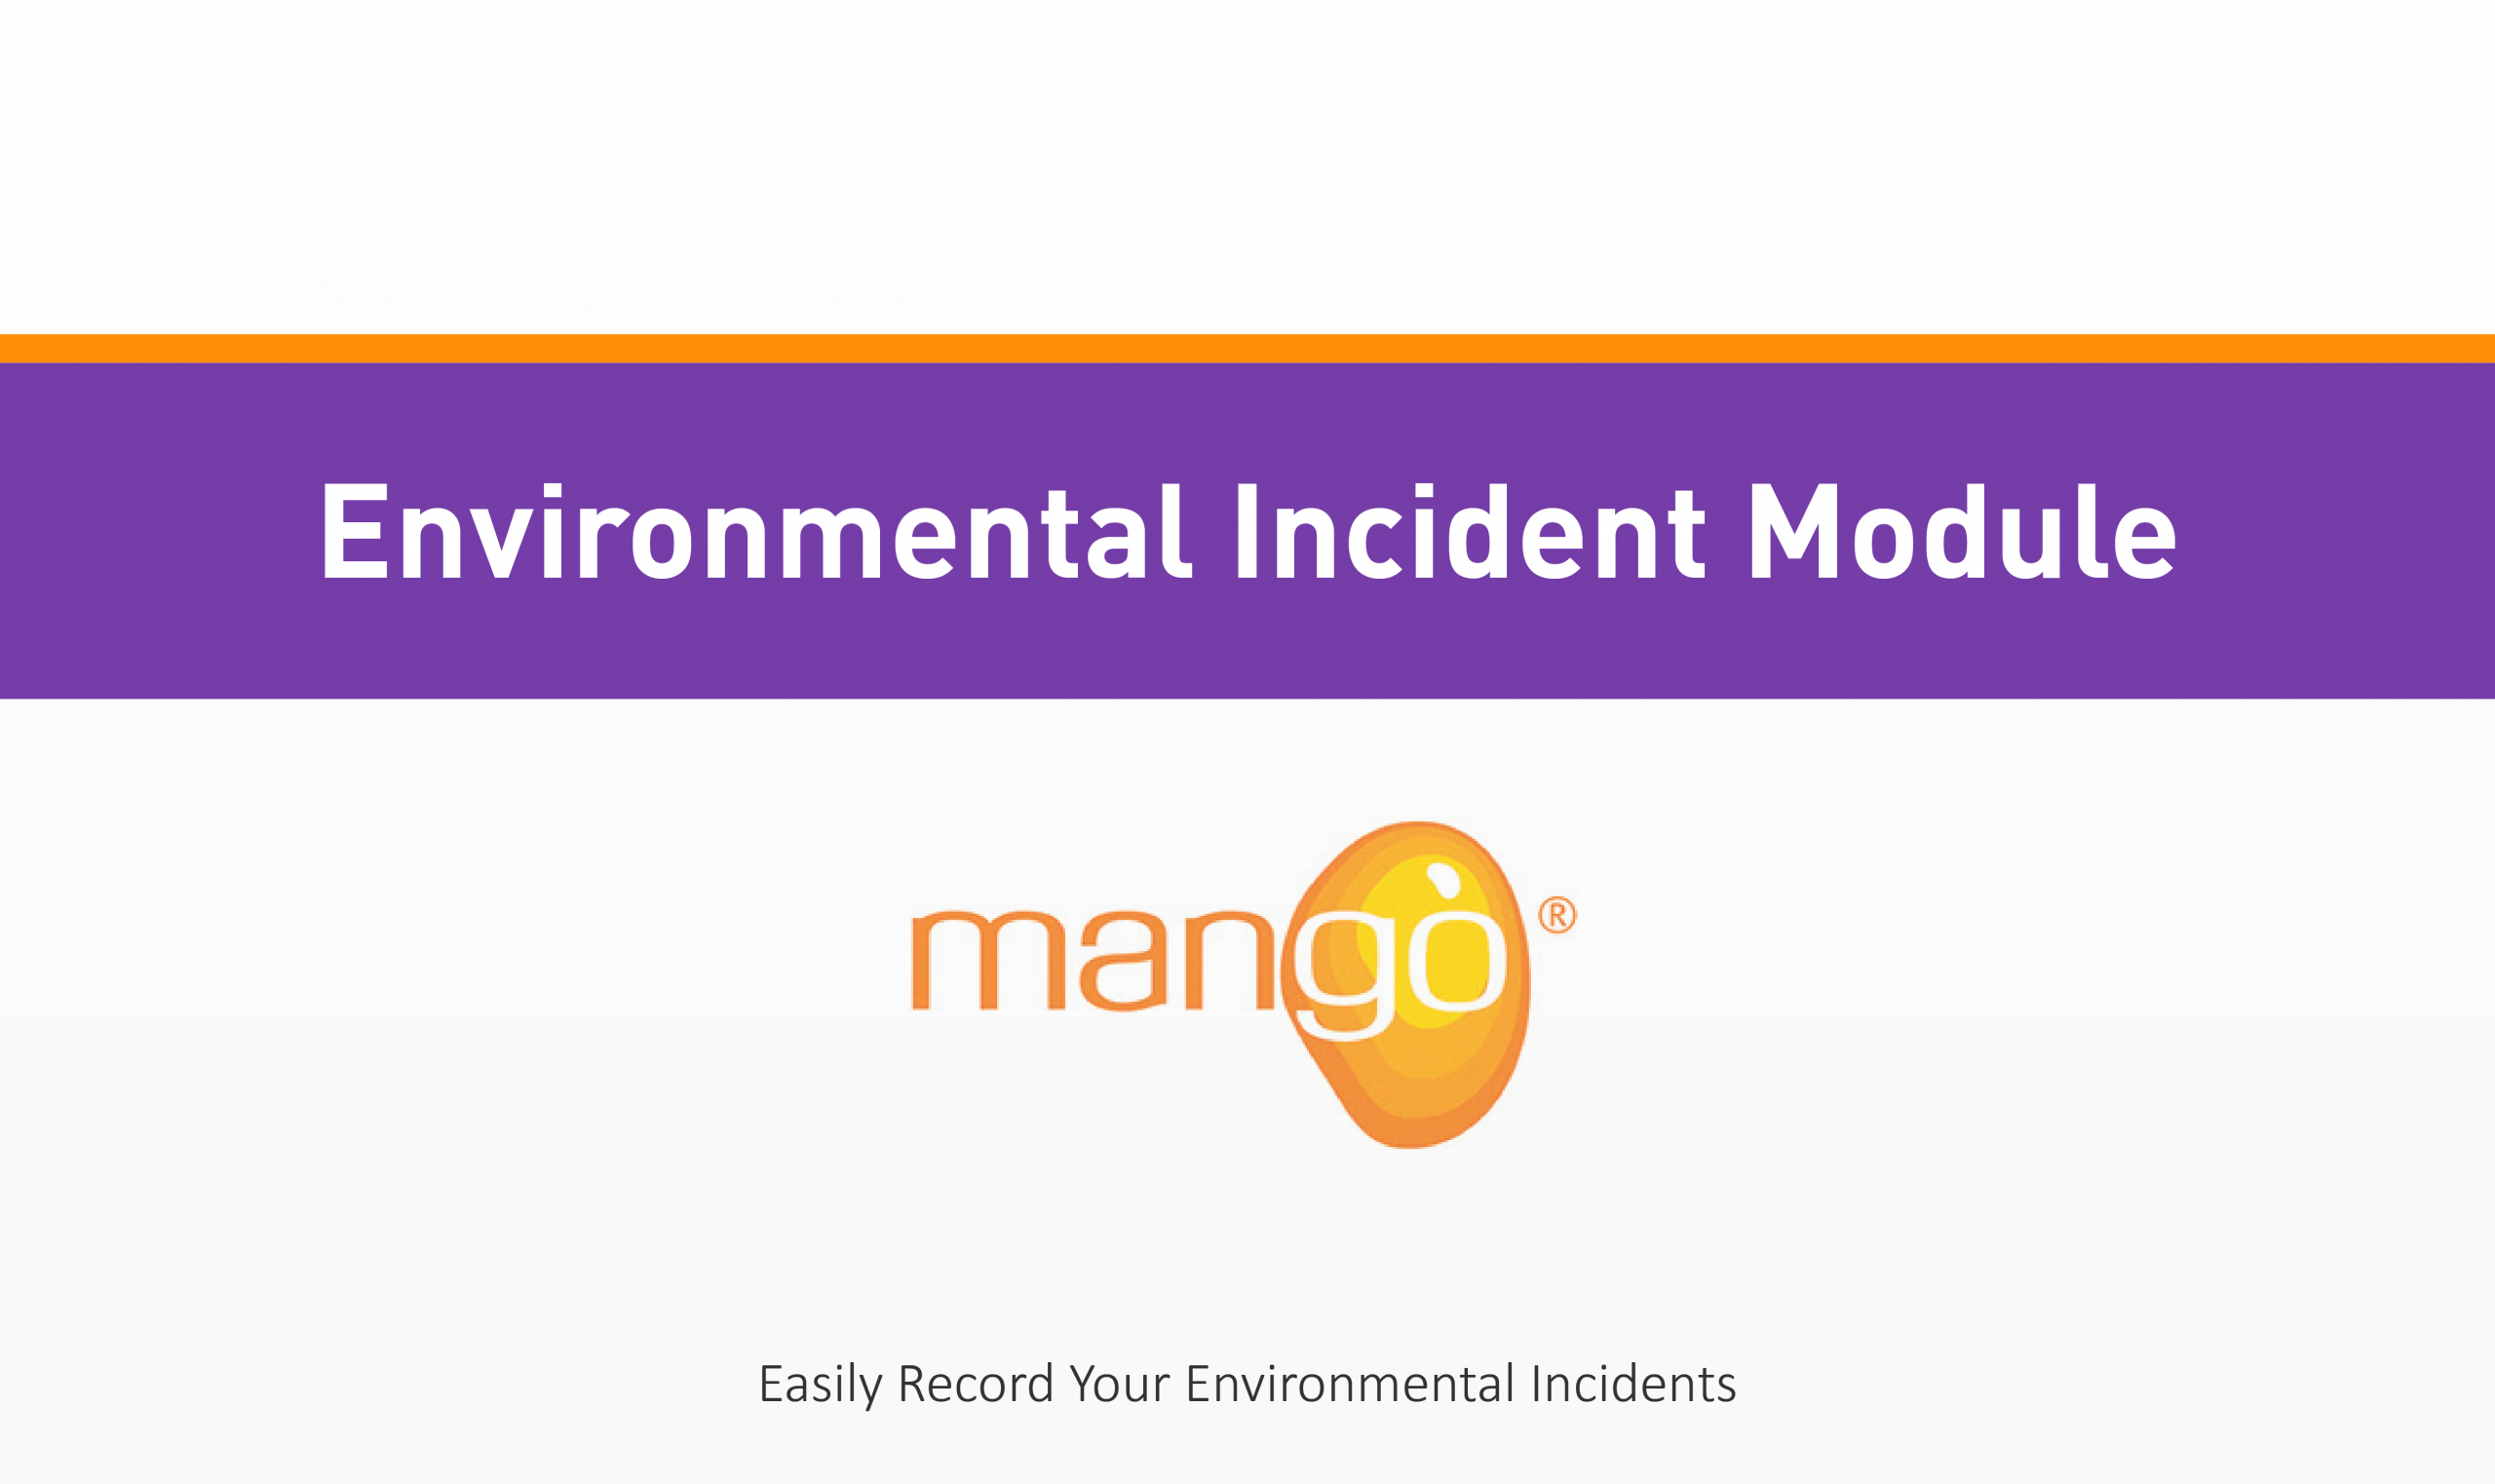 Environment Incidents Recording Easily Quality Health Safety Environment Management Compliance Services Australia QHSE Consulting And Auditing Mango Compliance Software Solutions